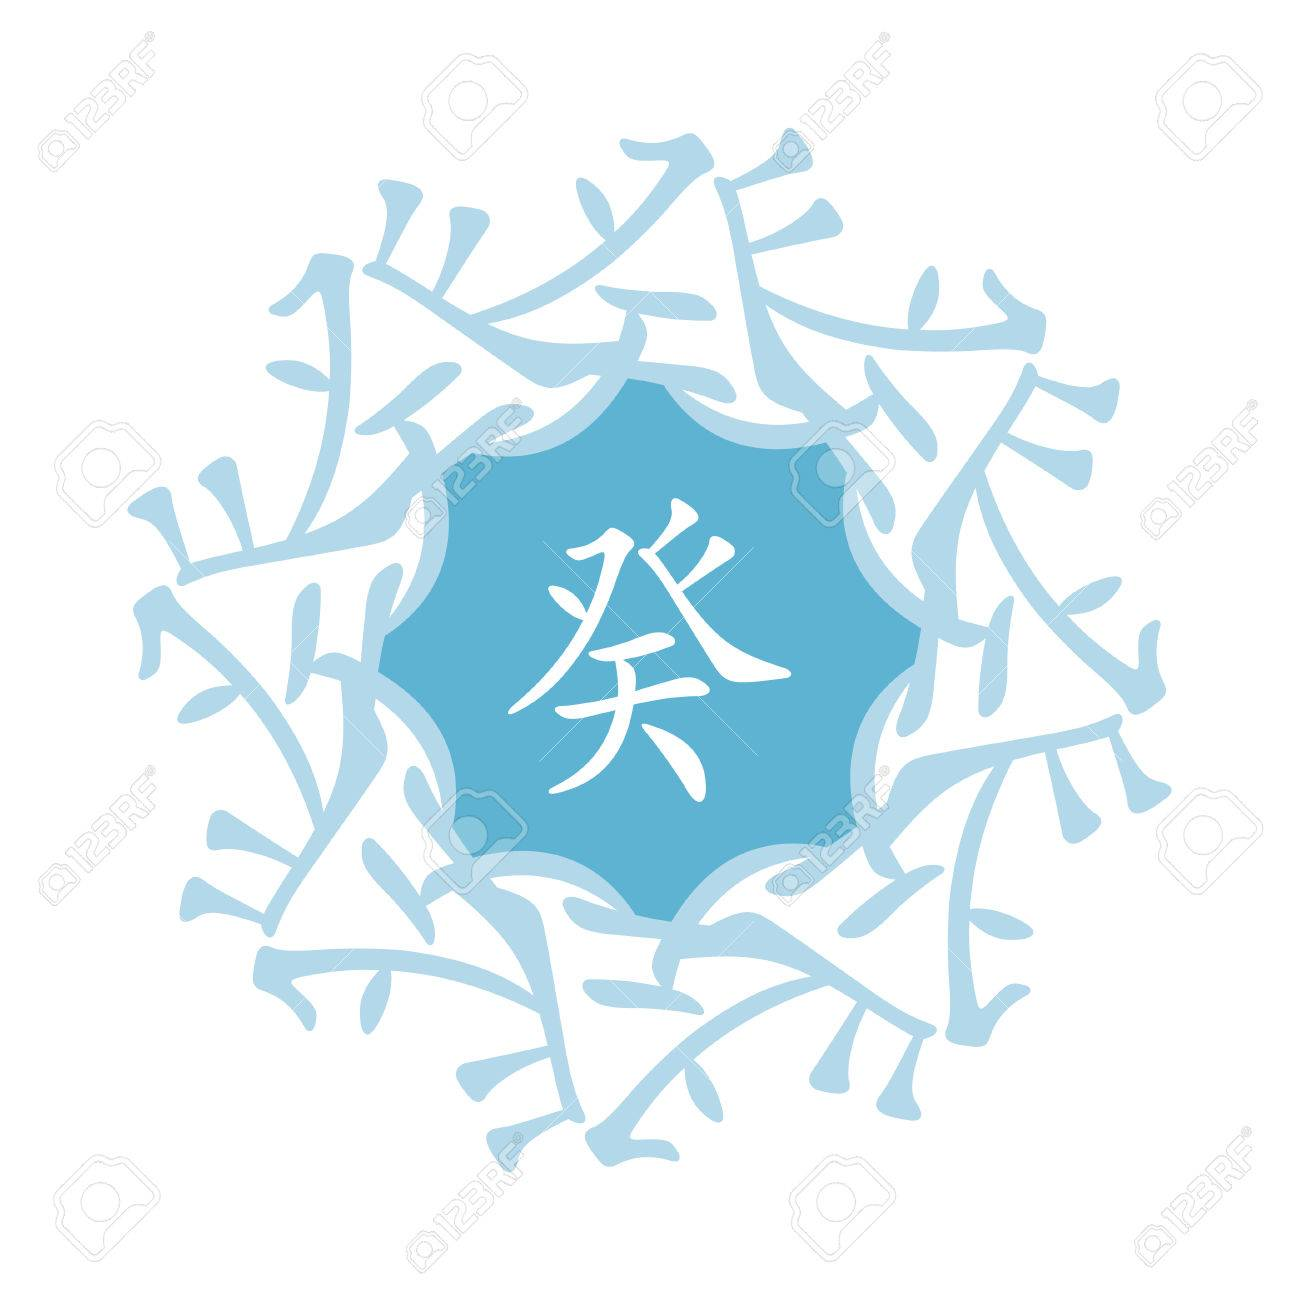 Symbol from chinese hieroglyphs translation of 10 zodiac stems symbol from chinese hieroglyphs translation of 10 zodiac stems feng shui signs hieroglyph biocorpaavc Gallery